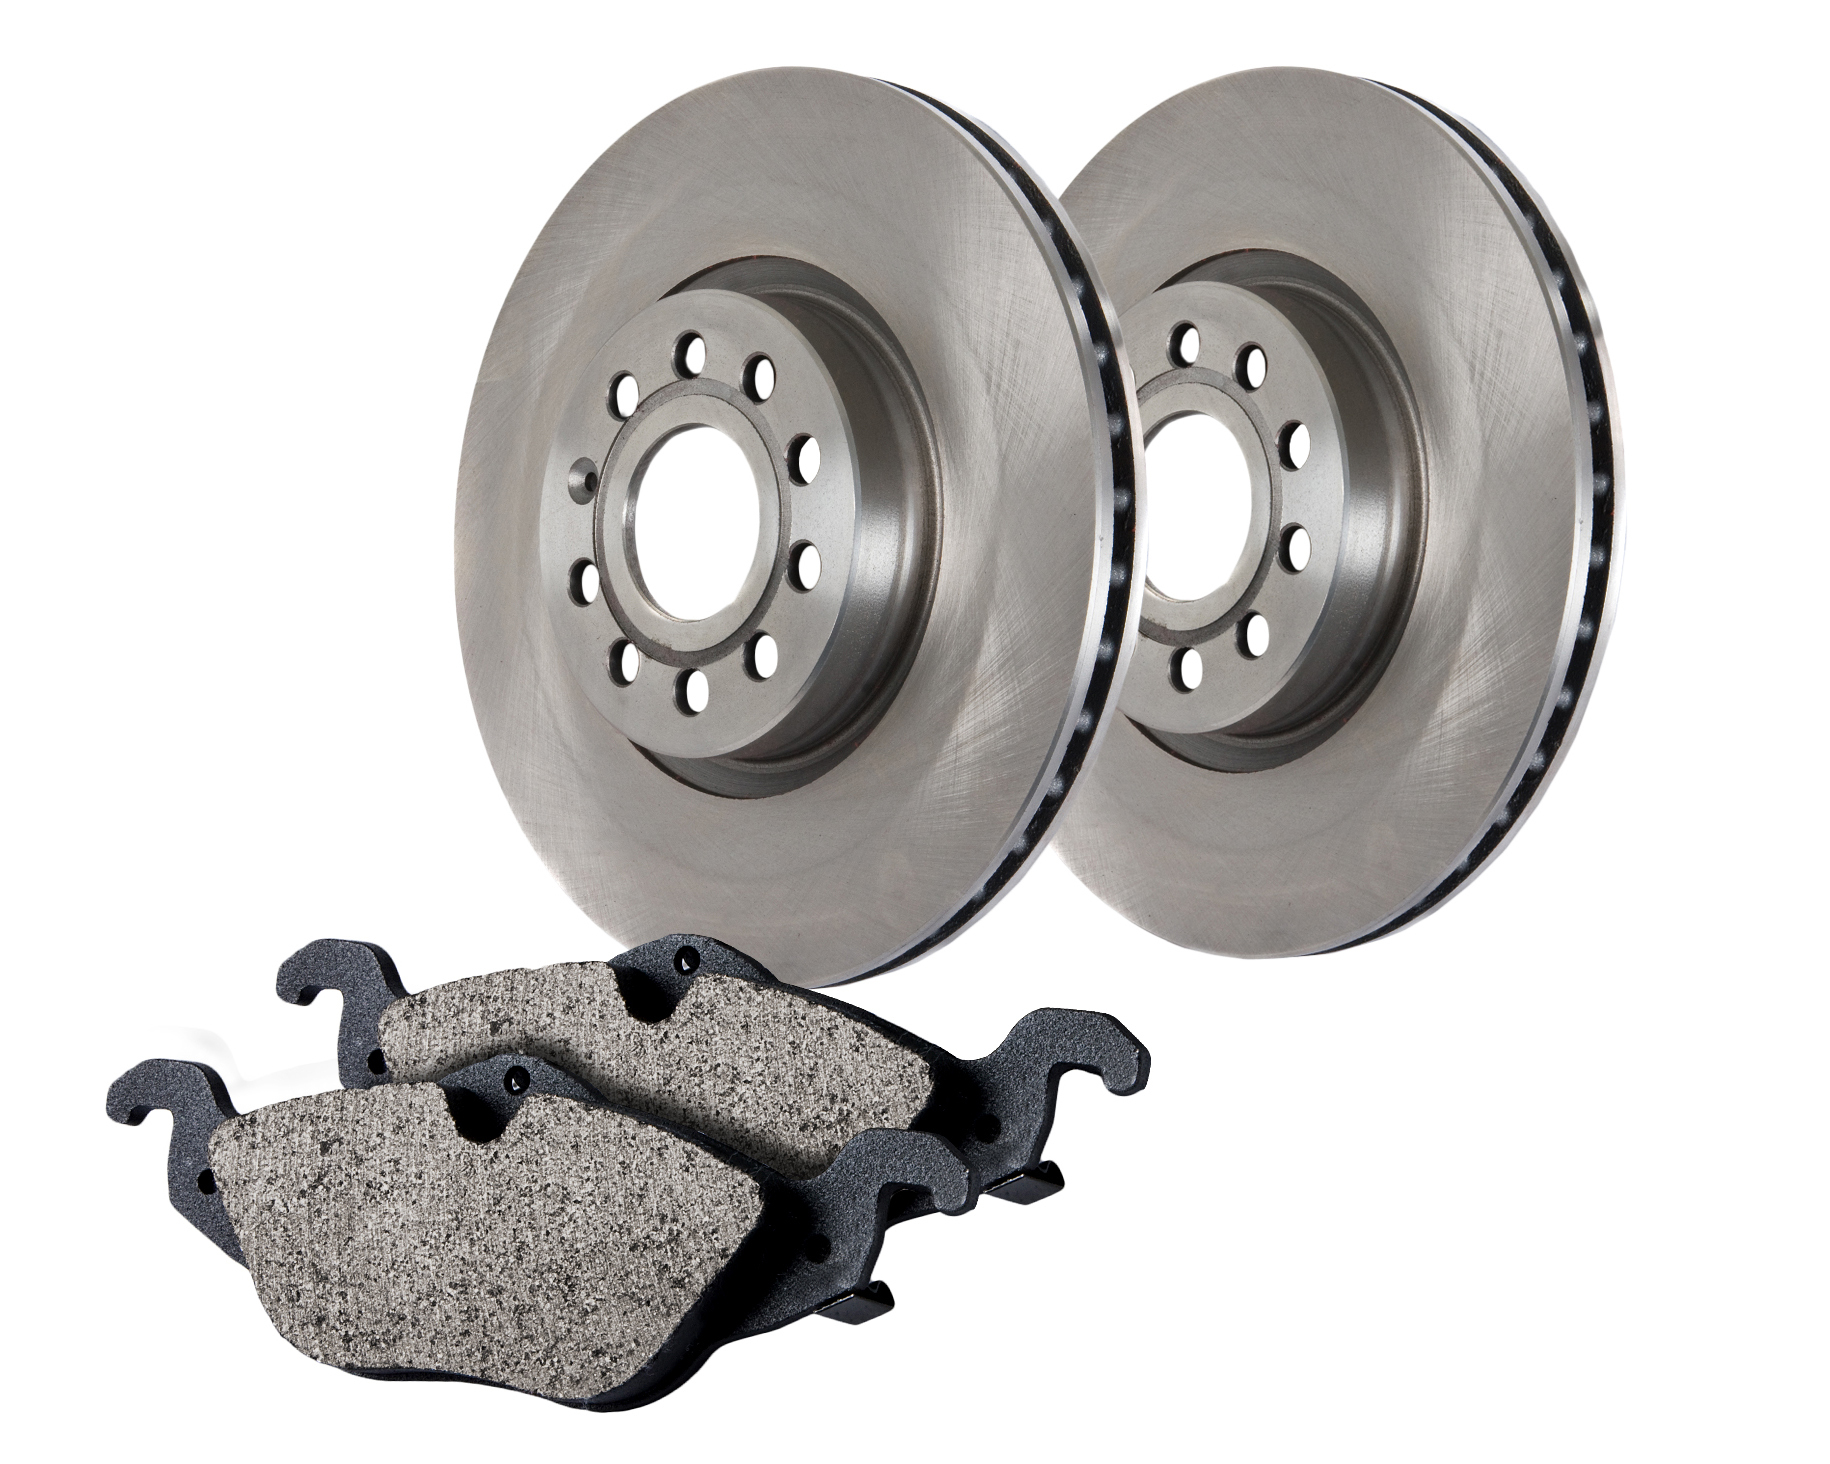 Centric Brake Parts 905.51016 Brake Rotor and Pad Kit, Premium, Semi-Metallic Pads, Iron, Natural, Hyundai Santa Fe 2001-06, Kit